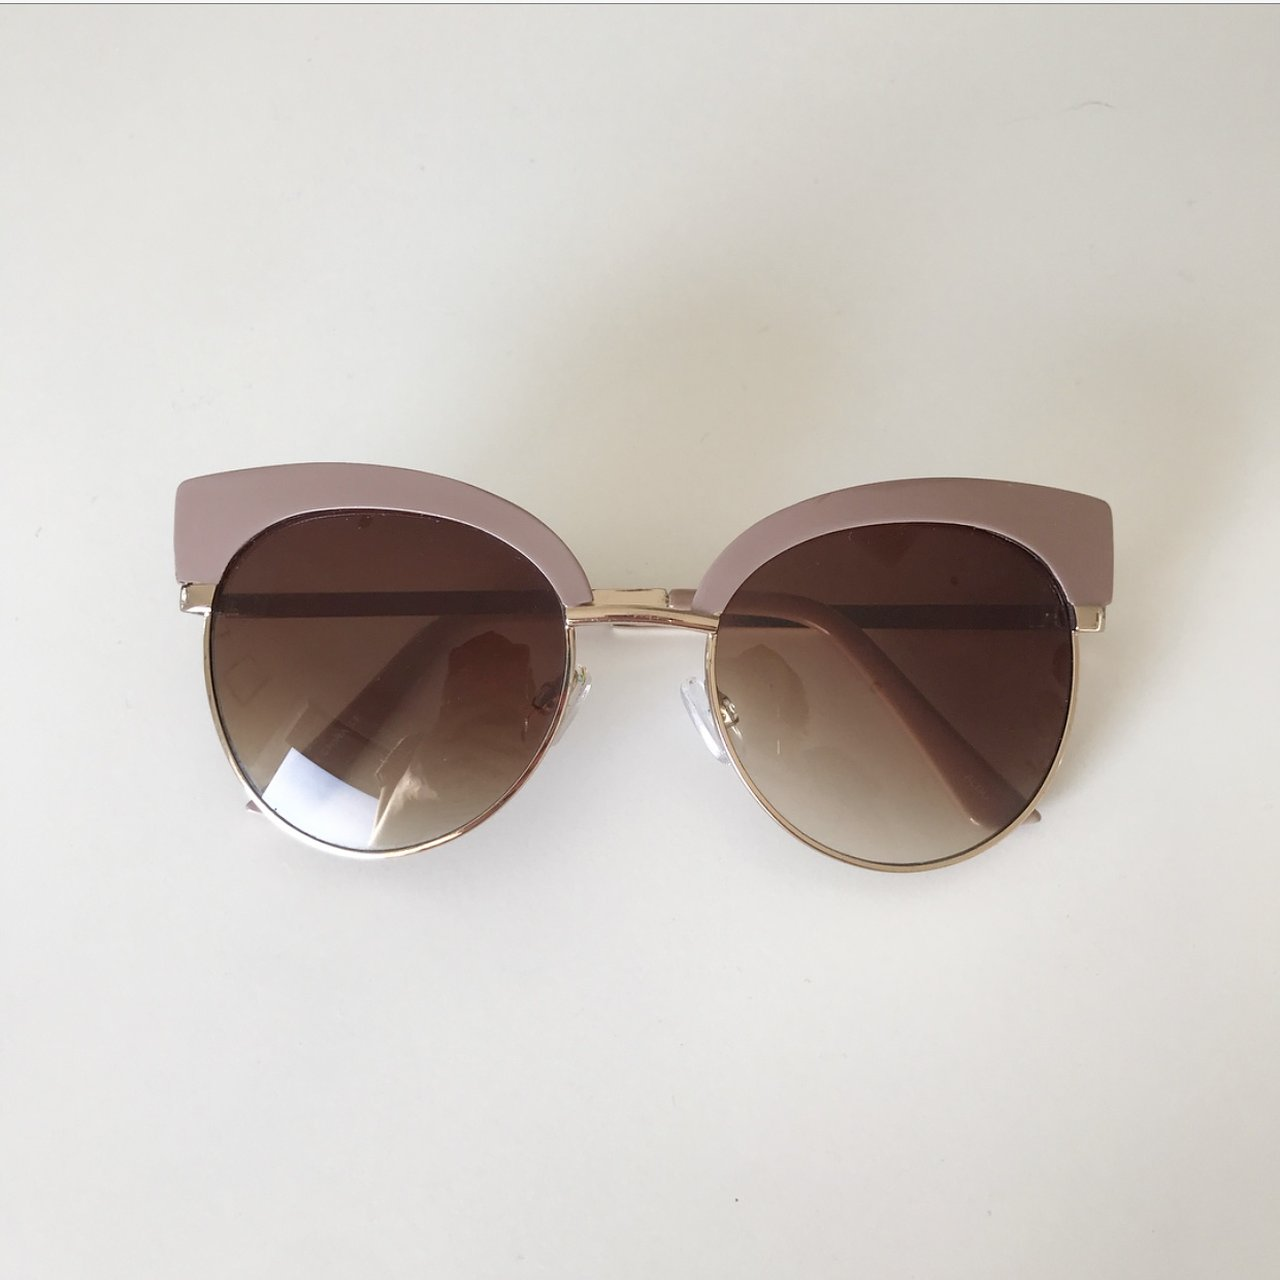 579659c355b Asos dusky pink round cat eye sunglasses - some light marks - Depop